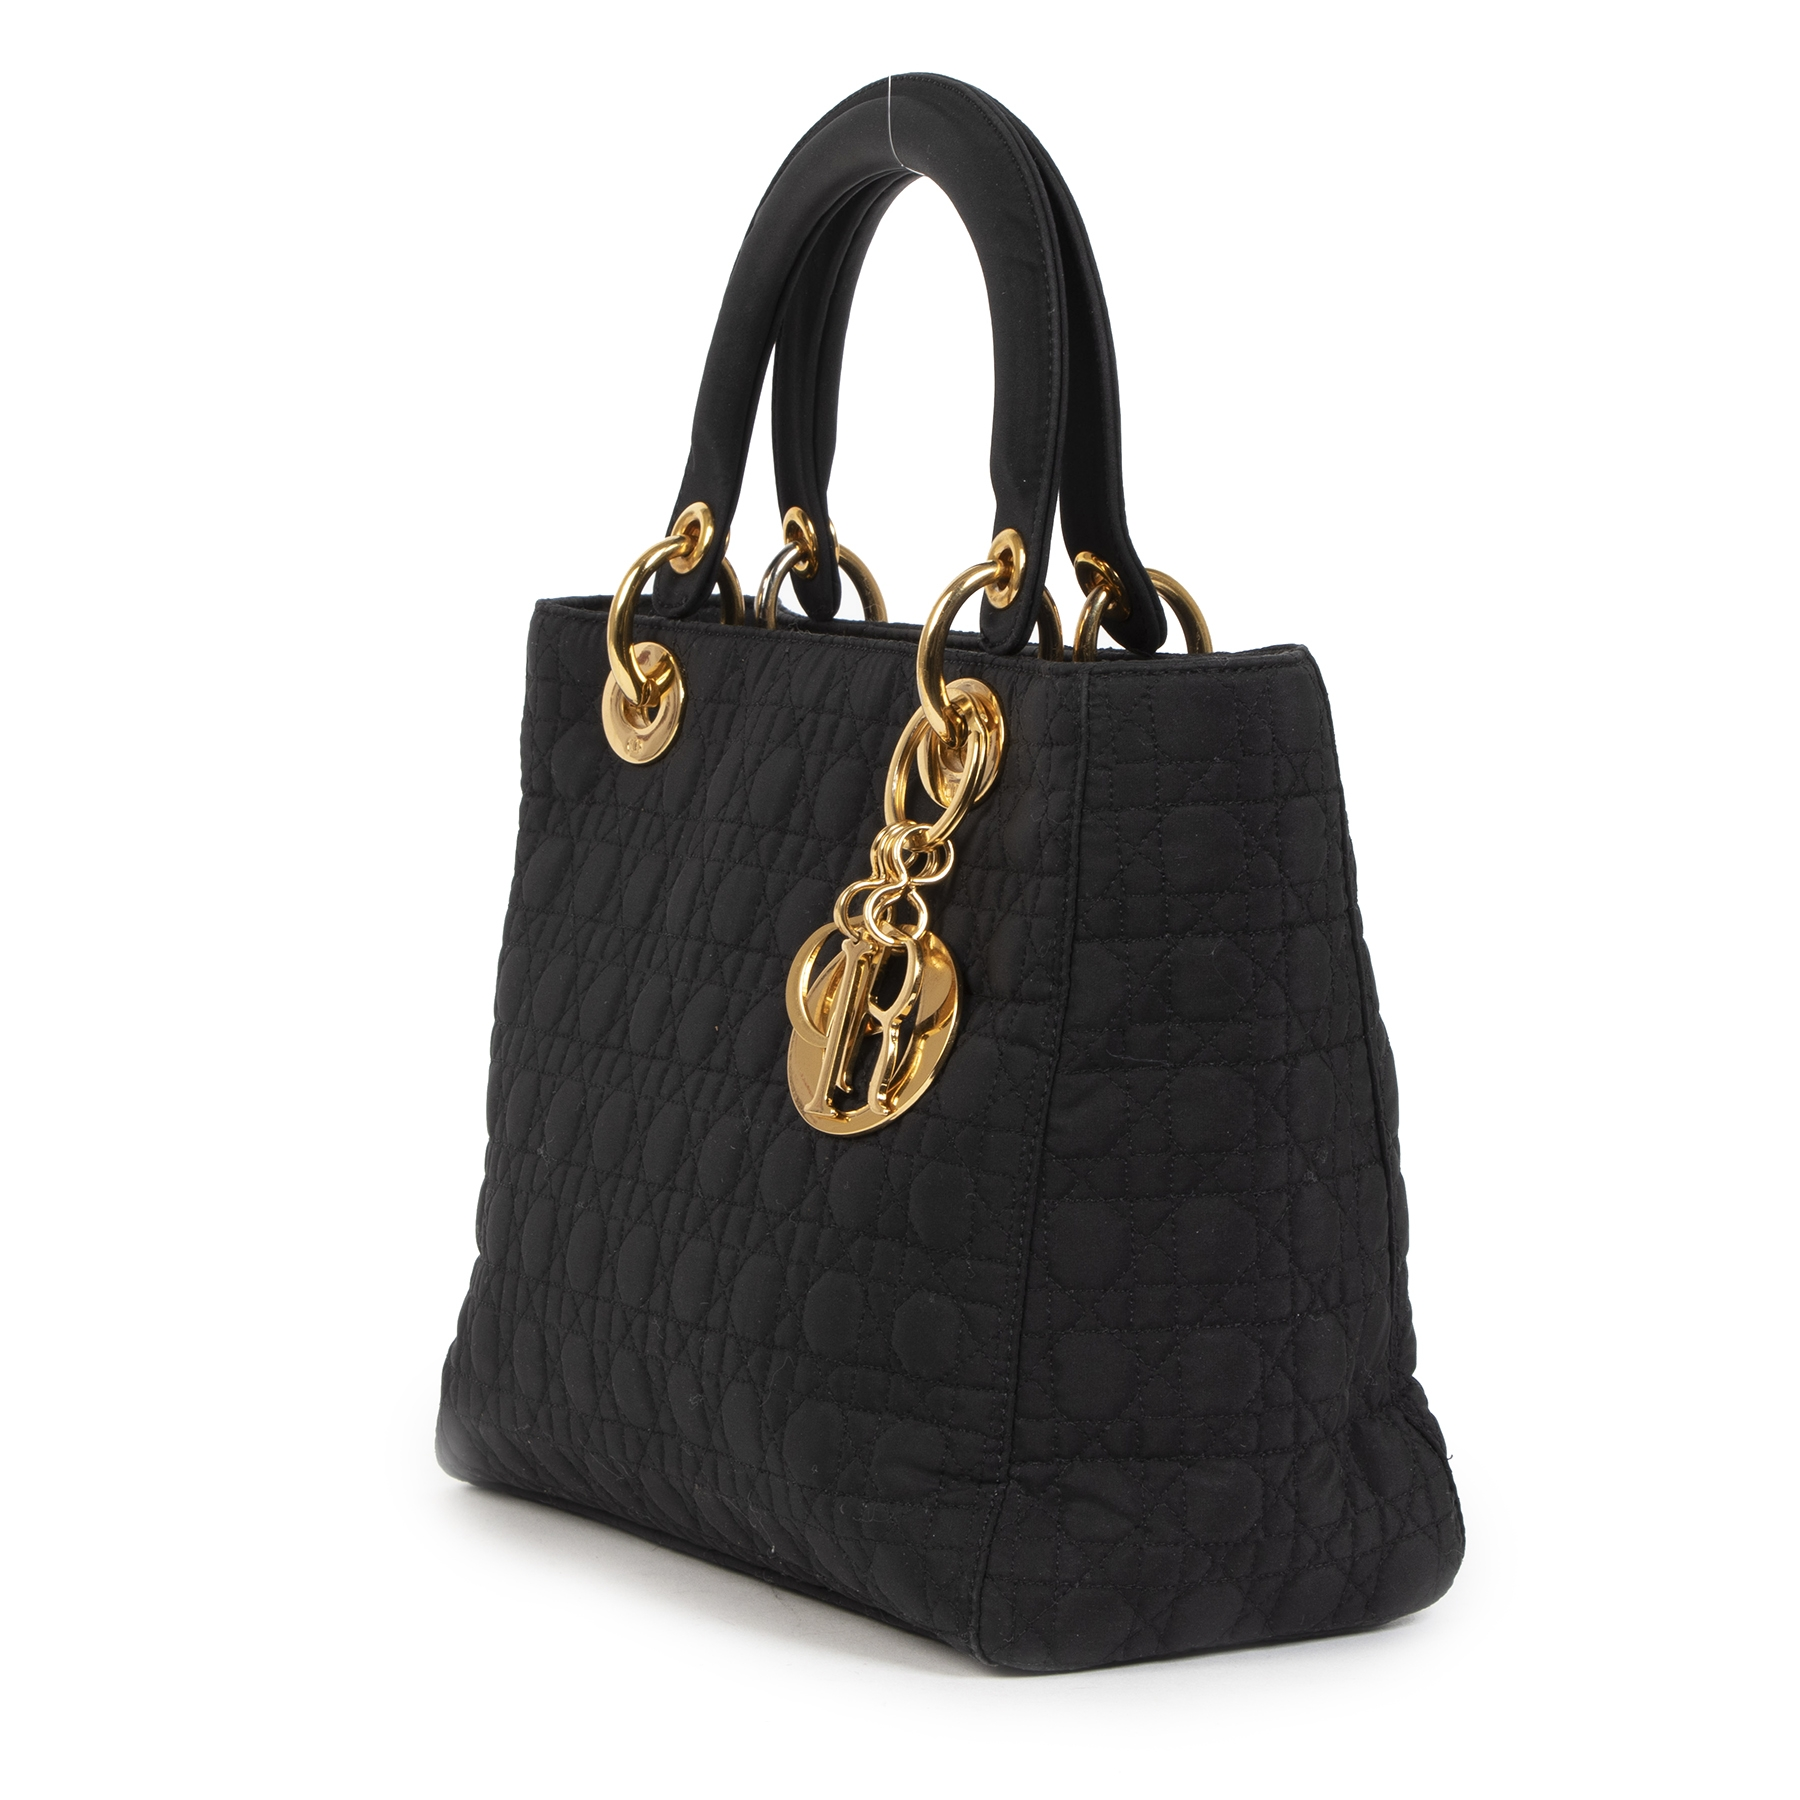 acheter en ligne pour le meilleur prix Lady Dior Black Quilted Cannage Nylon Medium Top Handle Bag